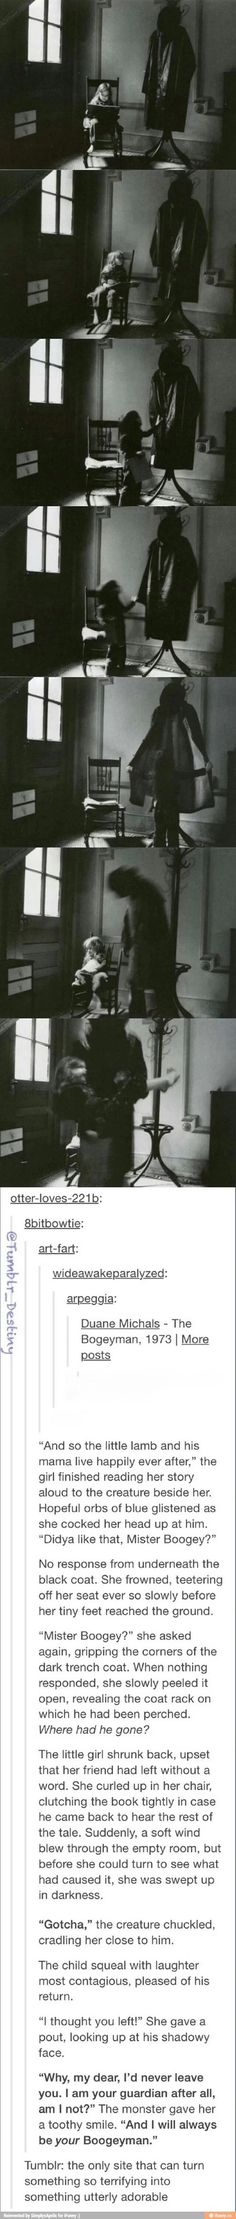 The Boogeyman is often seen as terrifying. I think not. Tumblr Stuff, My Tumblr, Tumblr Posts, Tumblr Funny, Creepy Stories, Bubbline, My Demons, Funny Love, Fall Funny